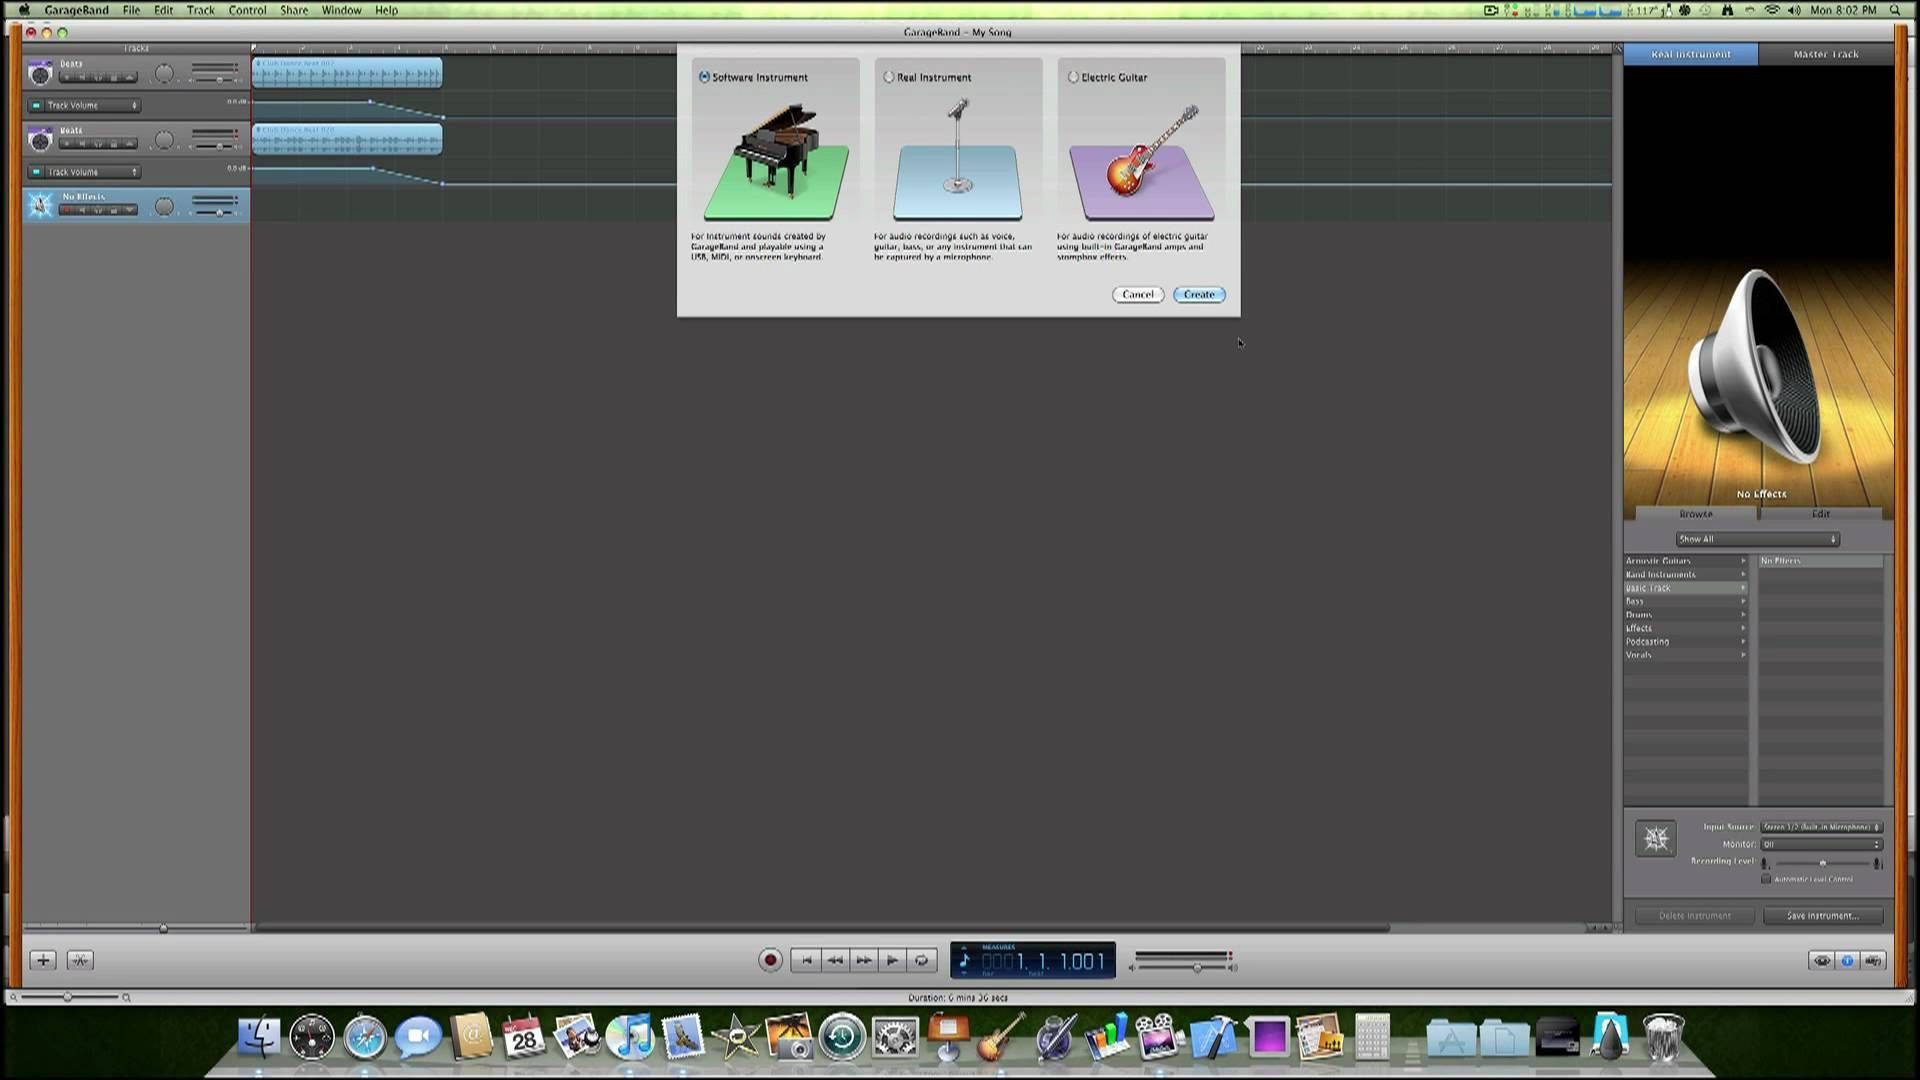 This is how to use Garage Band... Garage band